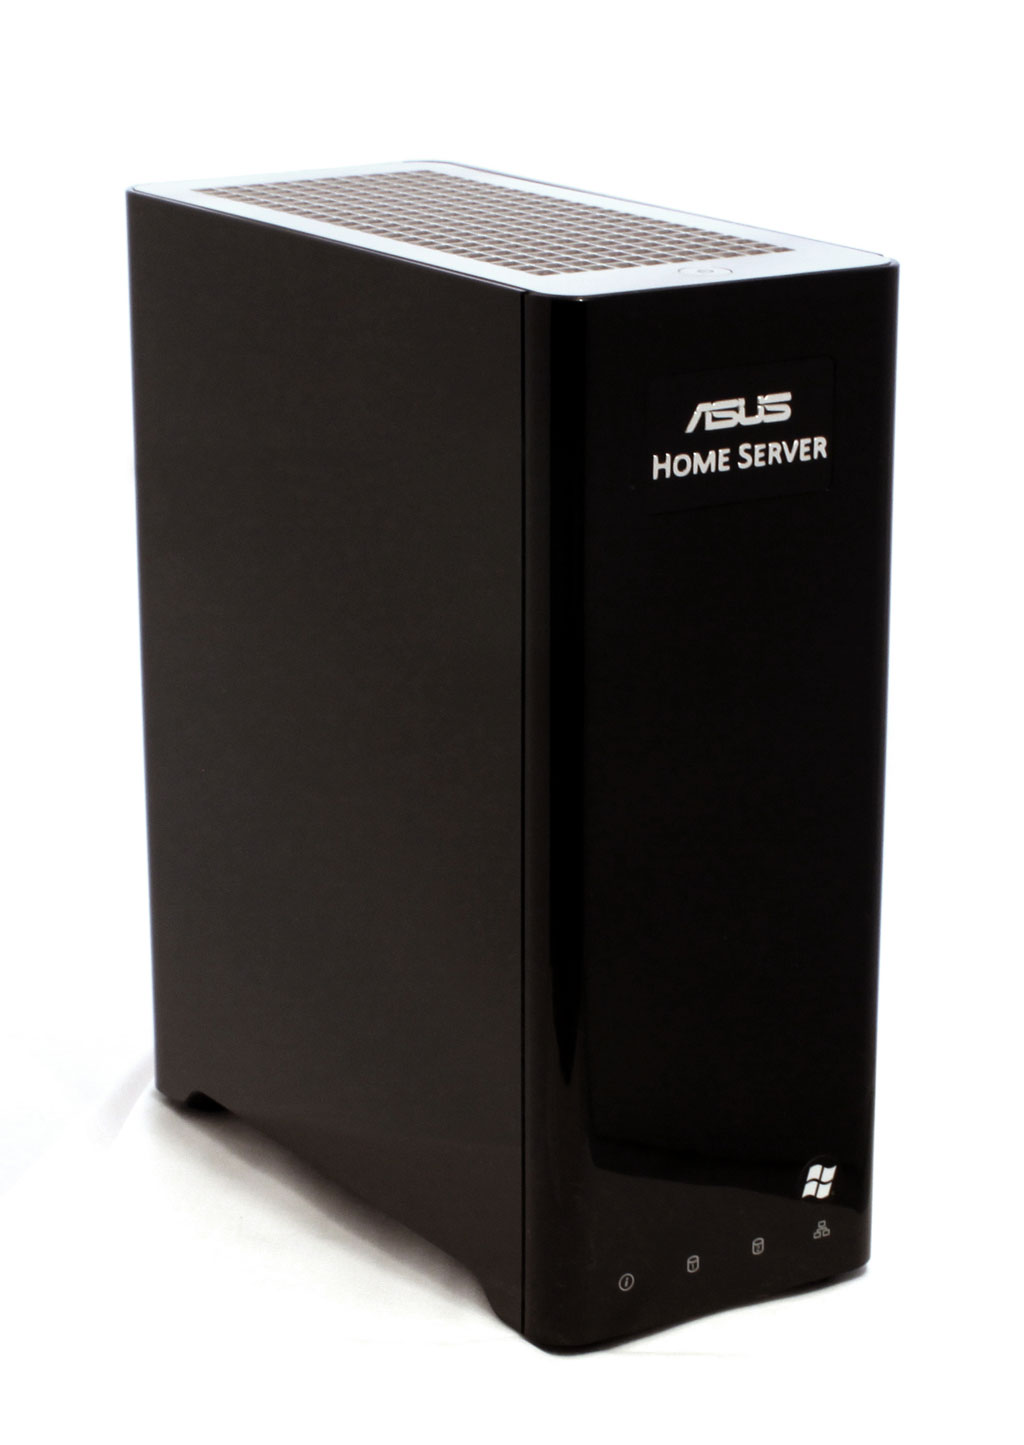 ASUS TS mini Home Server Review